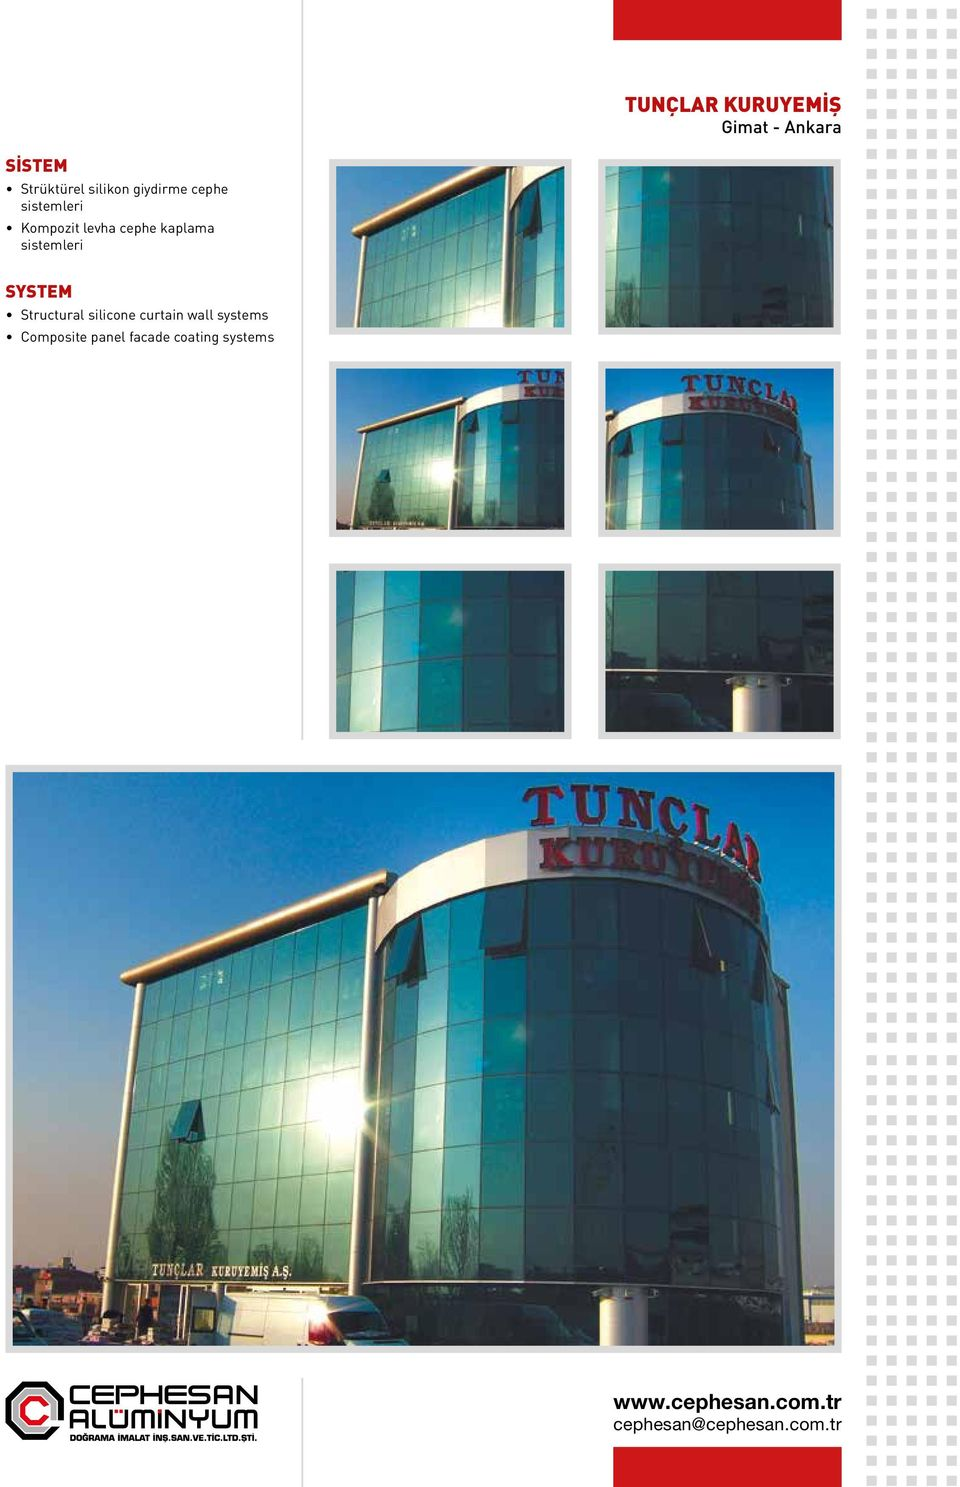 kaplama Structural silicone curtain wall